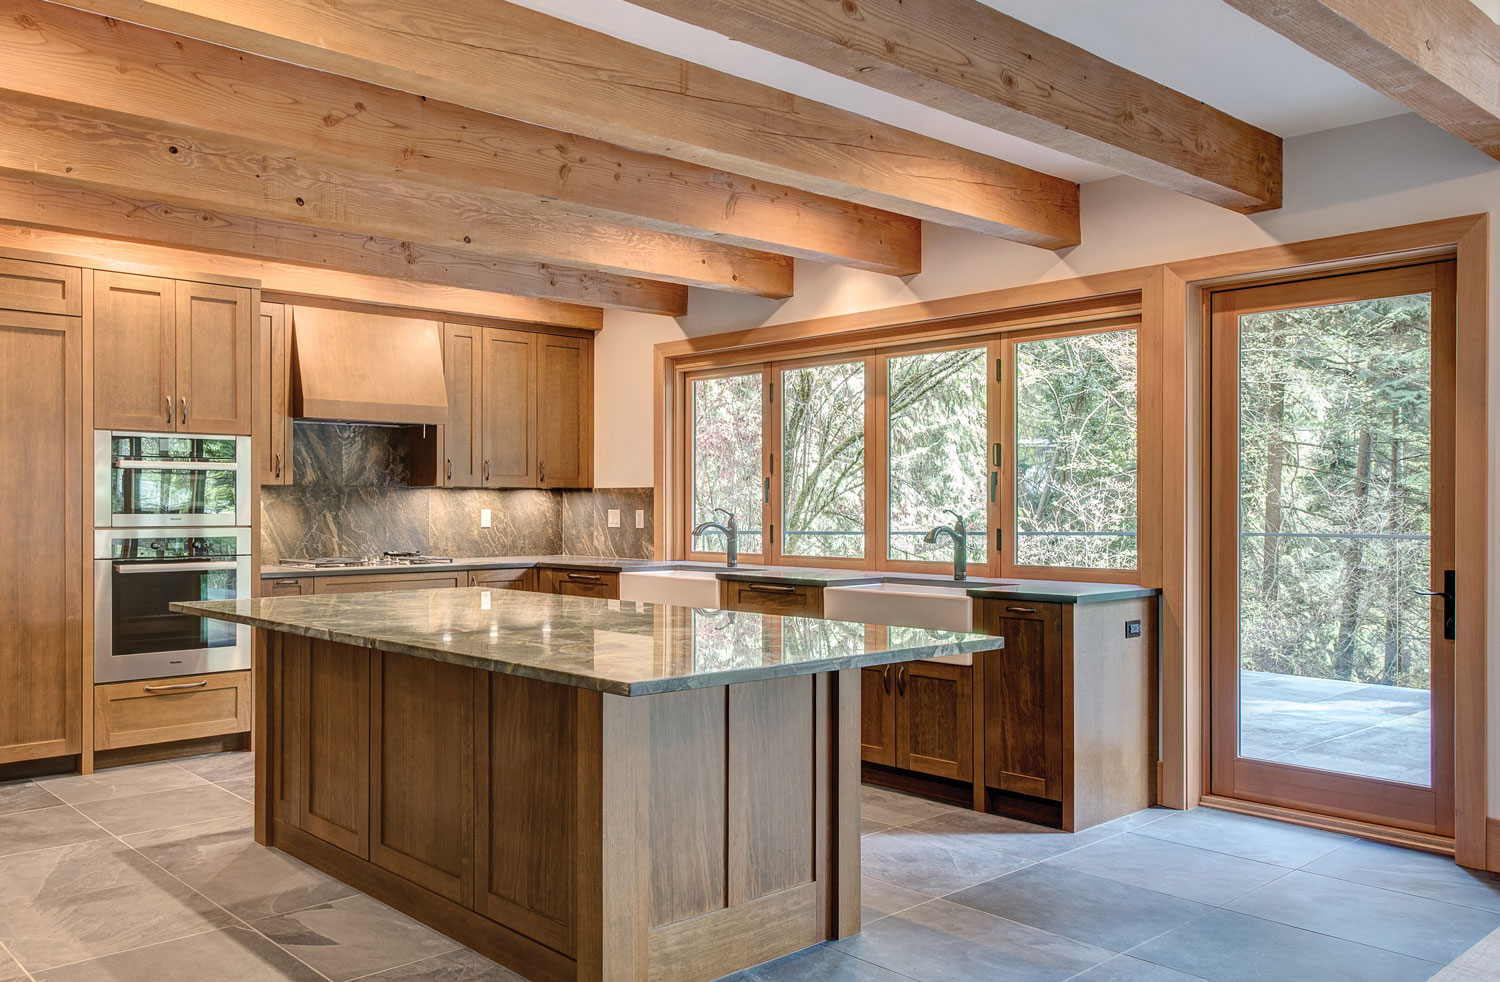 Beautiful kitchen with wood windows, door, and mouldings